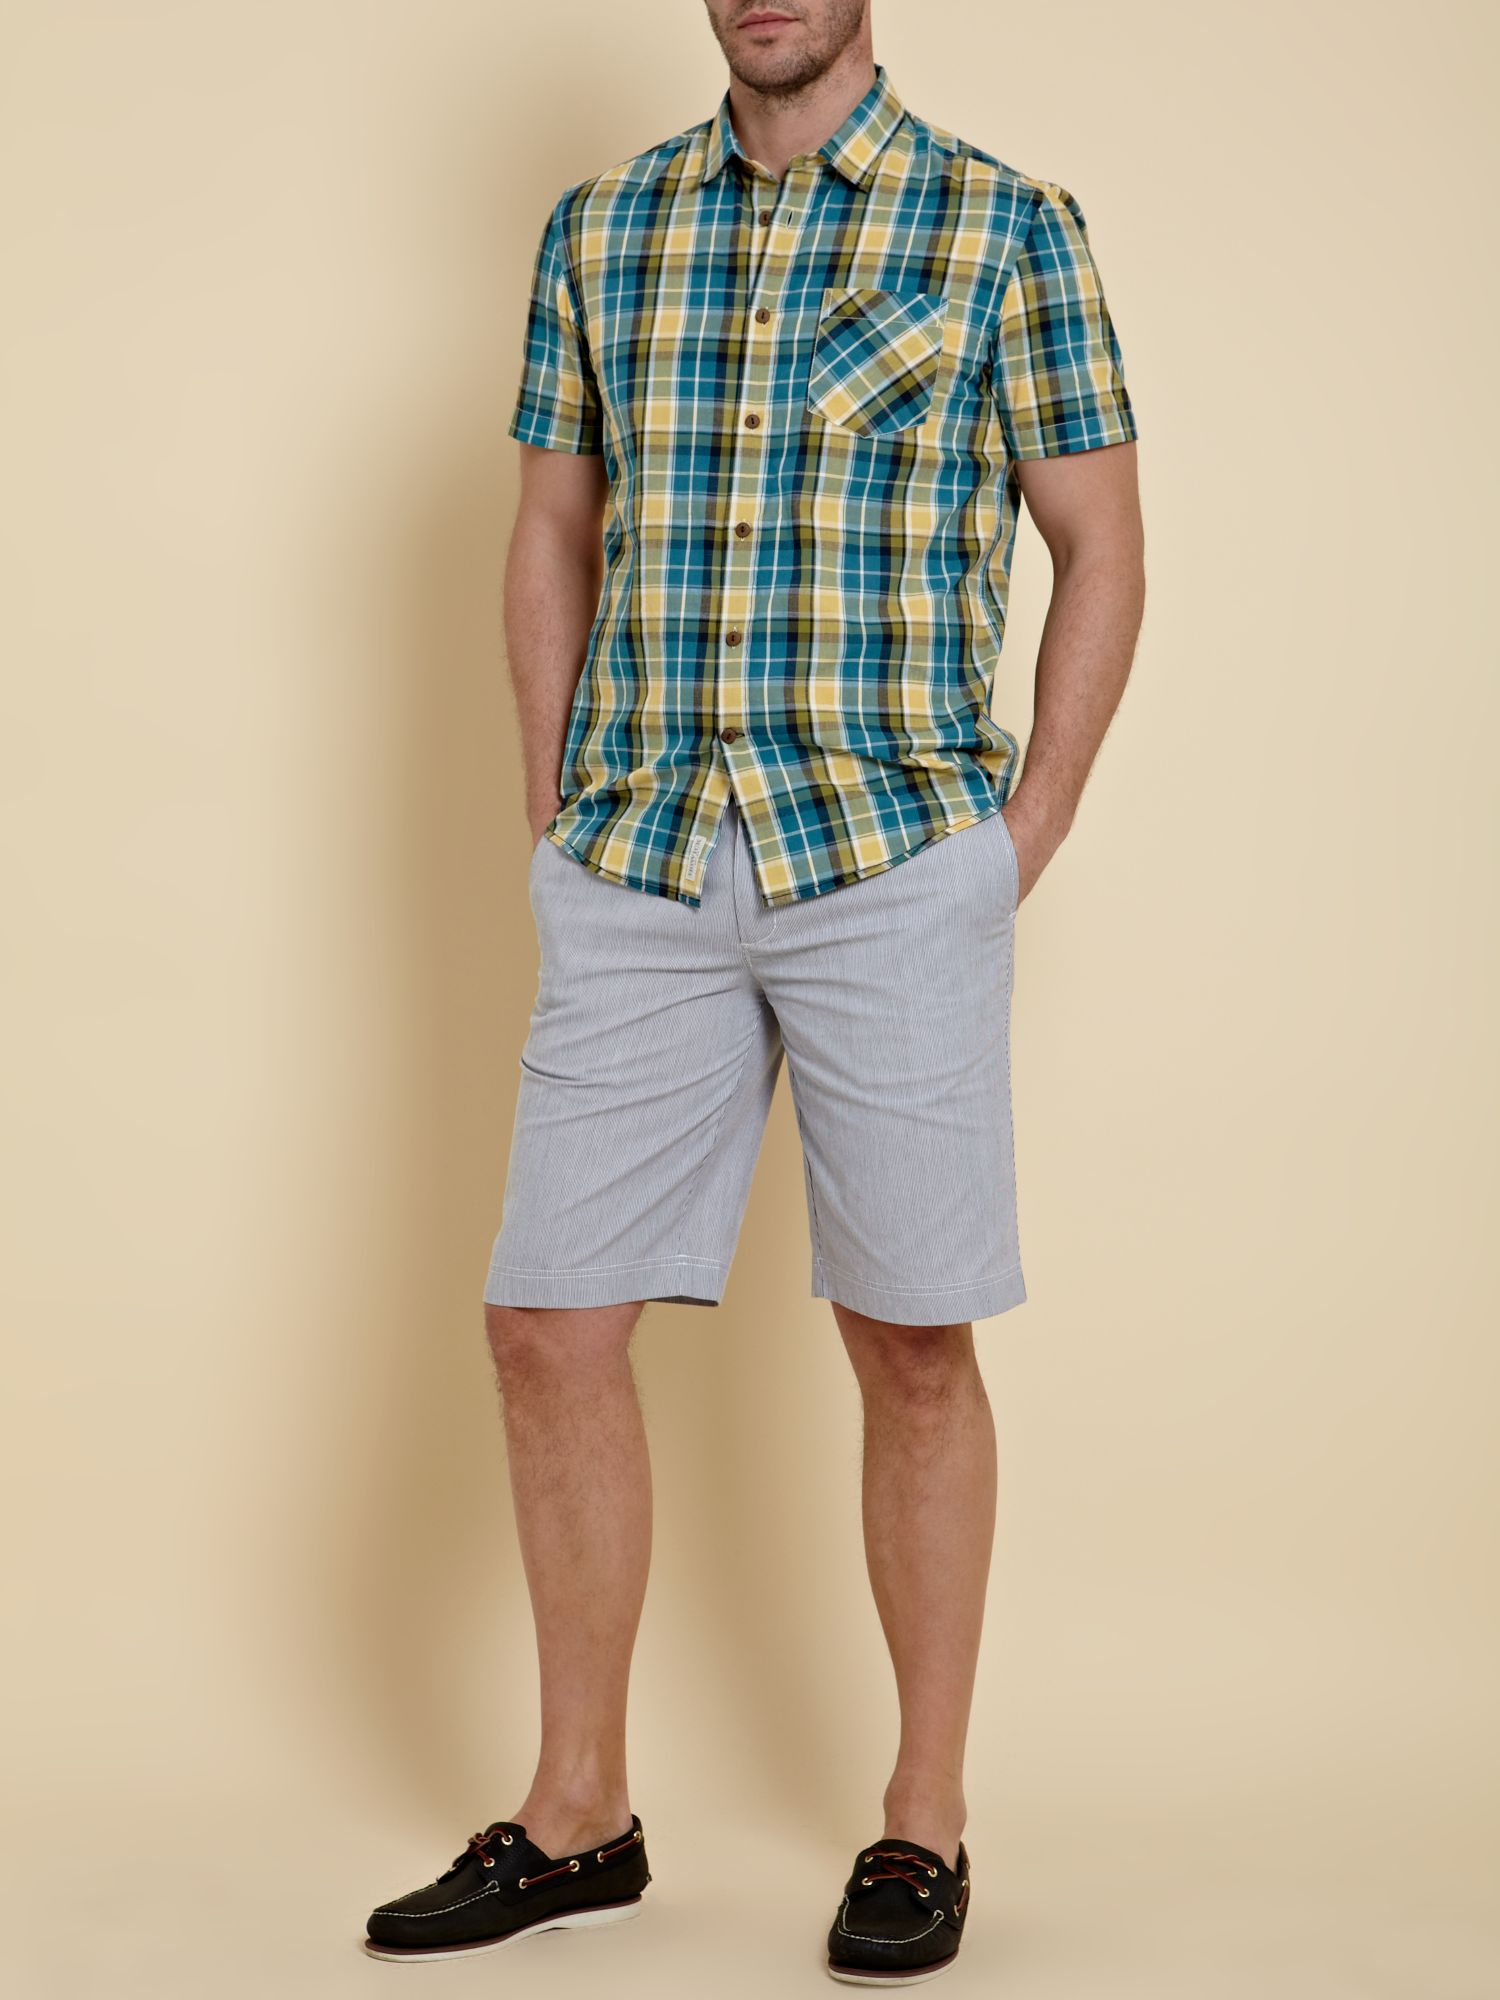 Short sleeved aquatic checked shirt